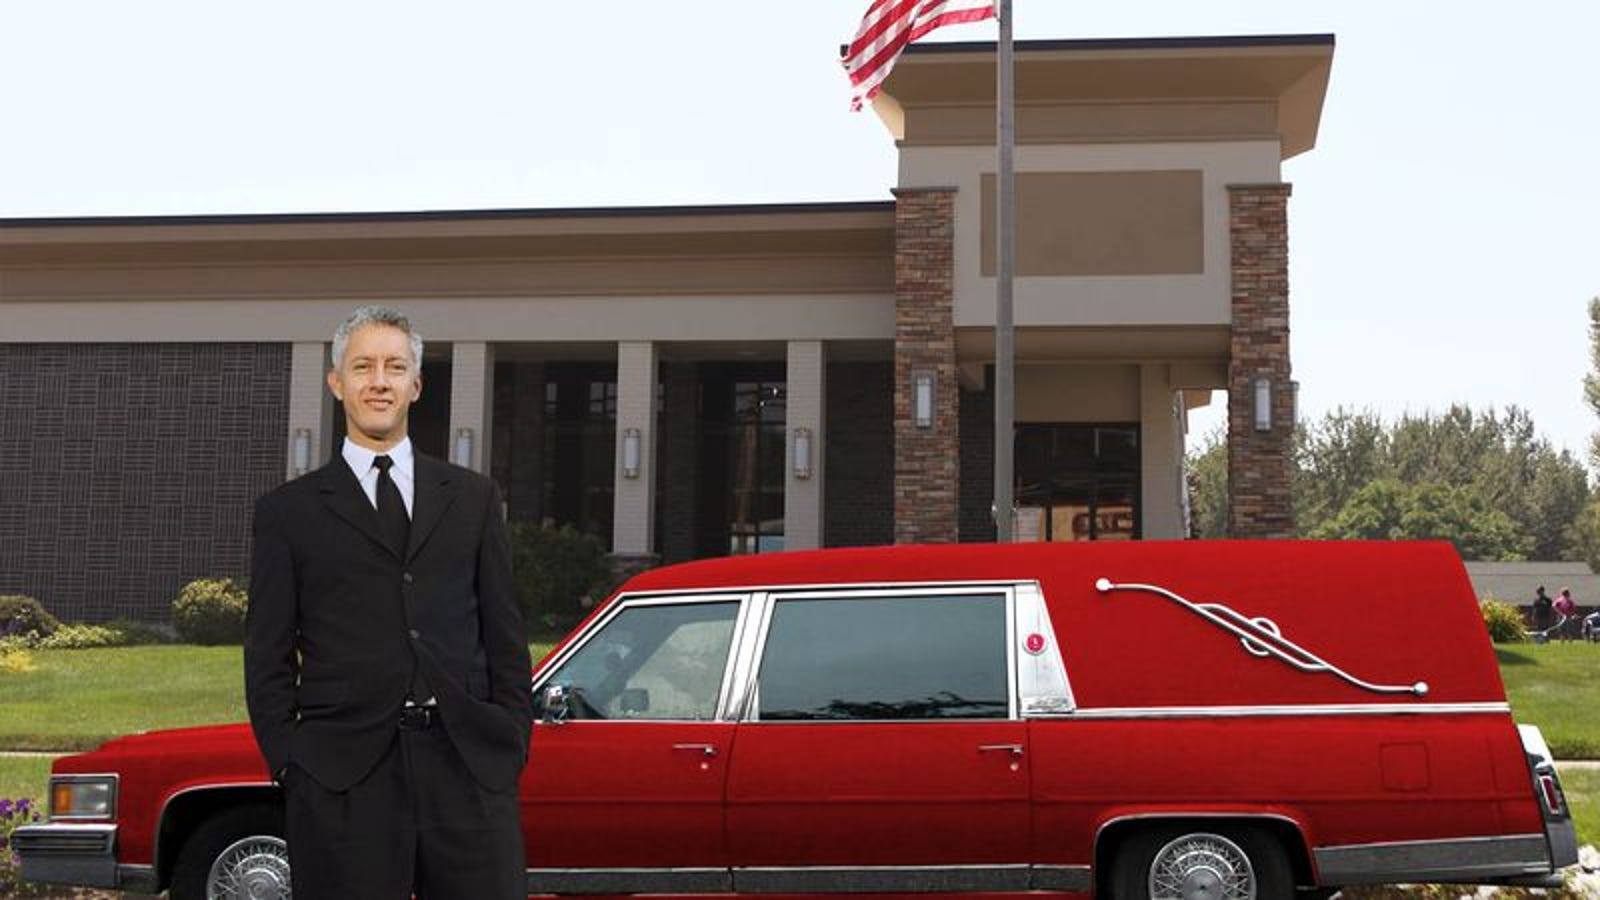 Middle-Aged Funeral Director Buys Flashy Red Hearse